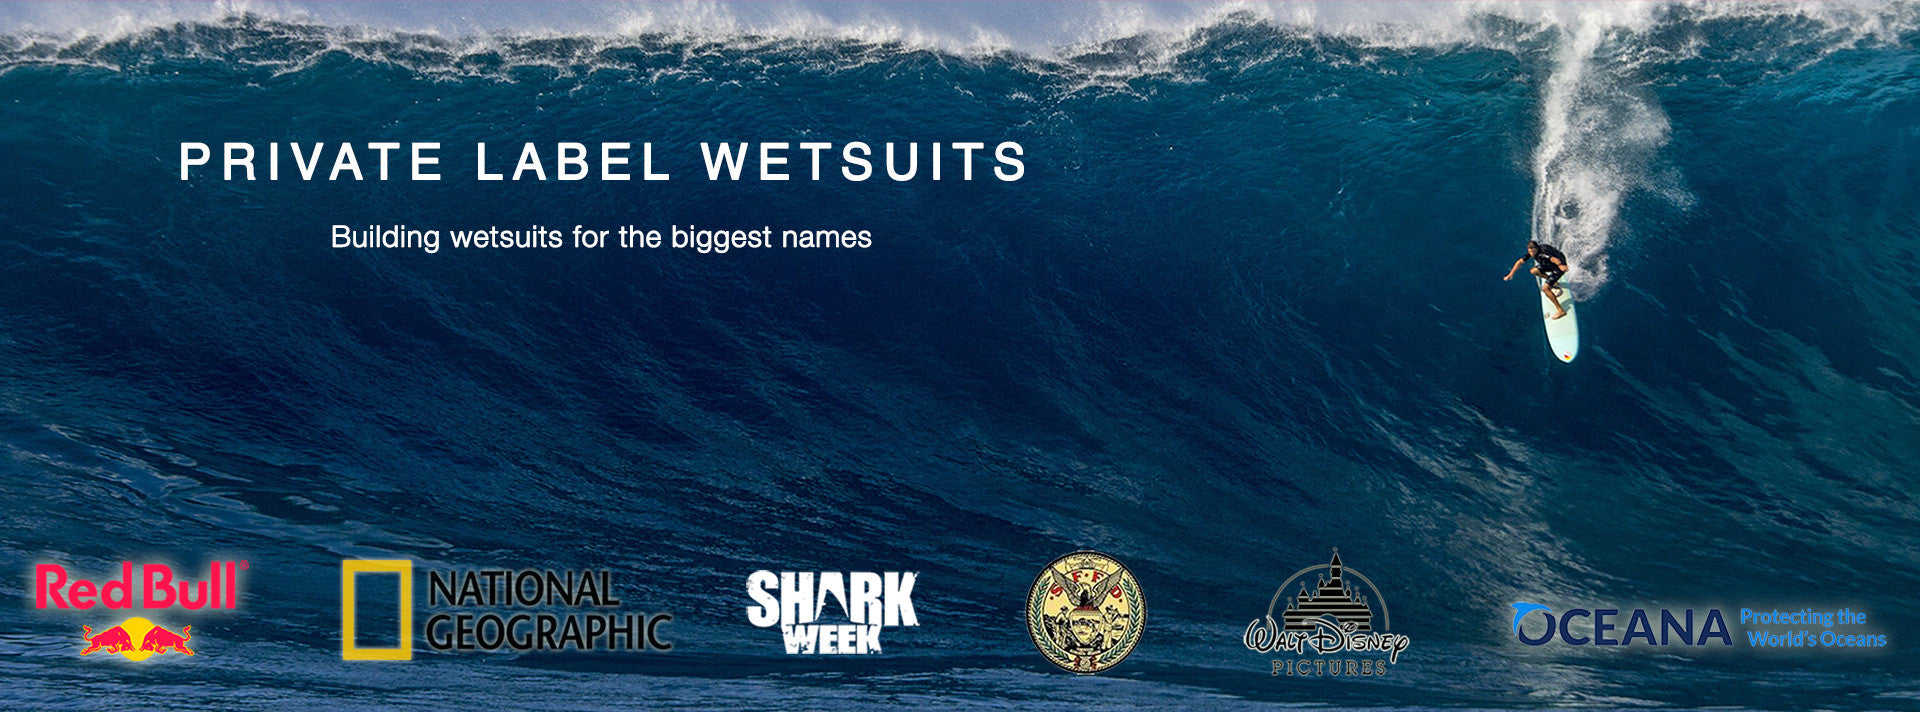 Wetsuit manufacturing